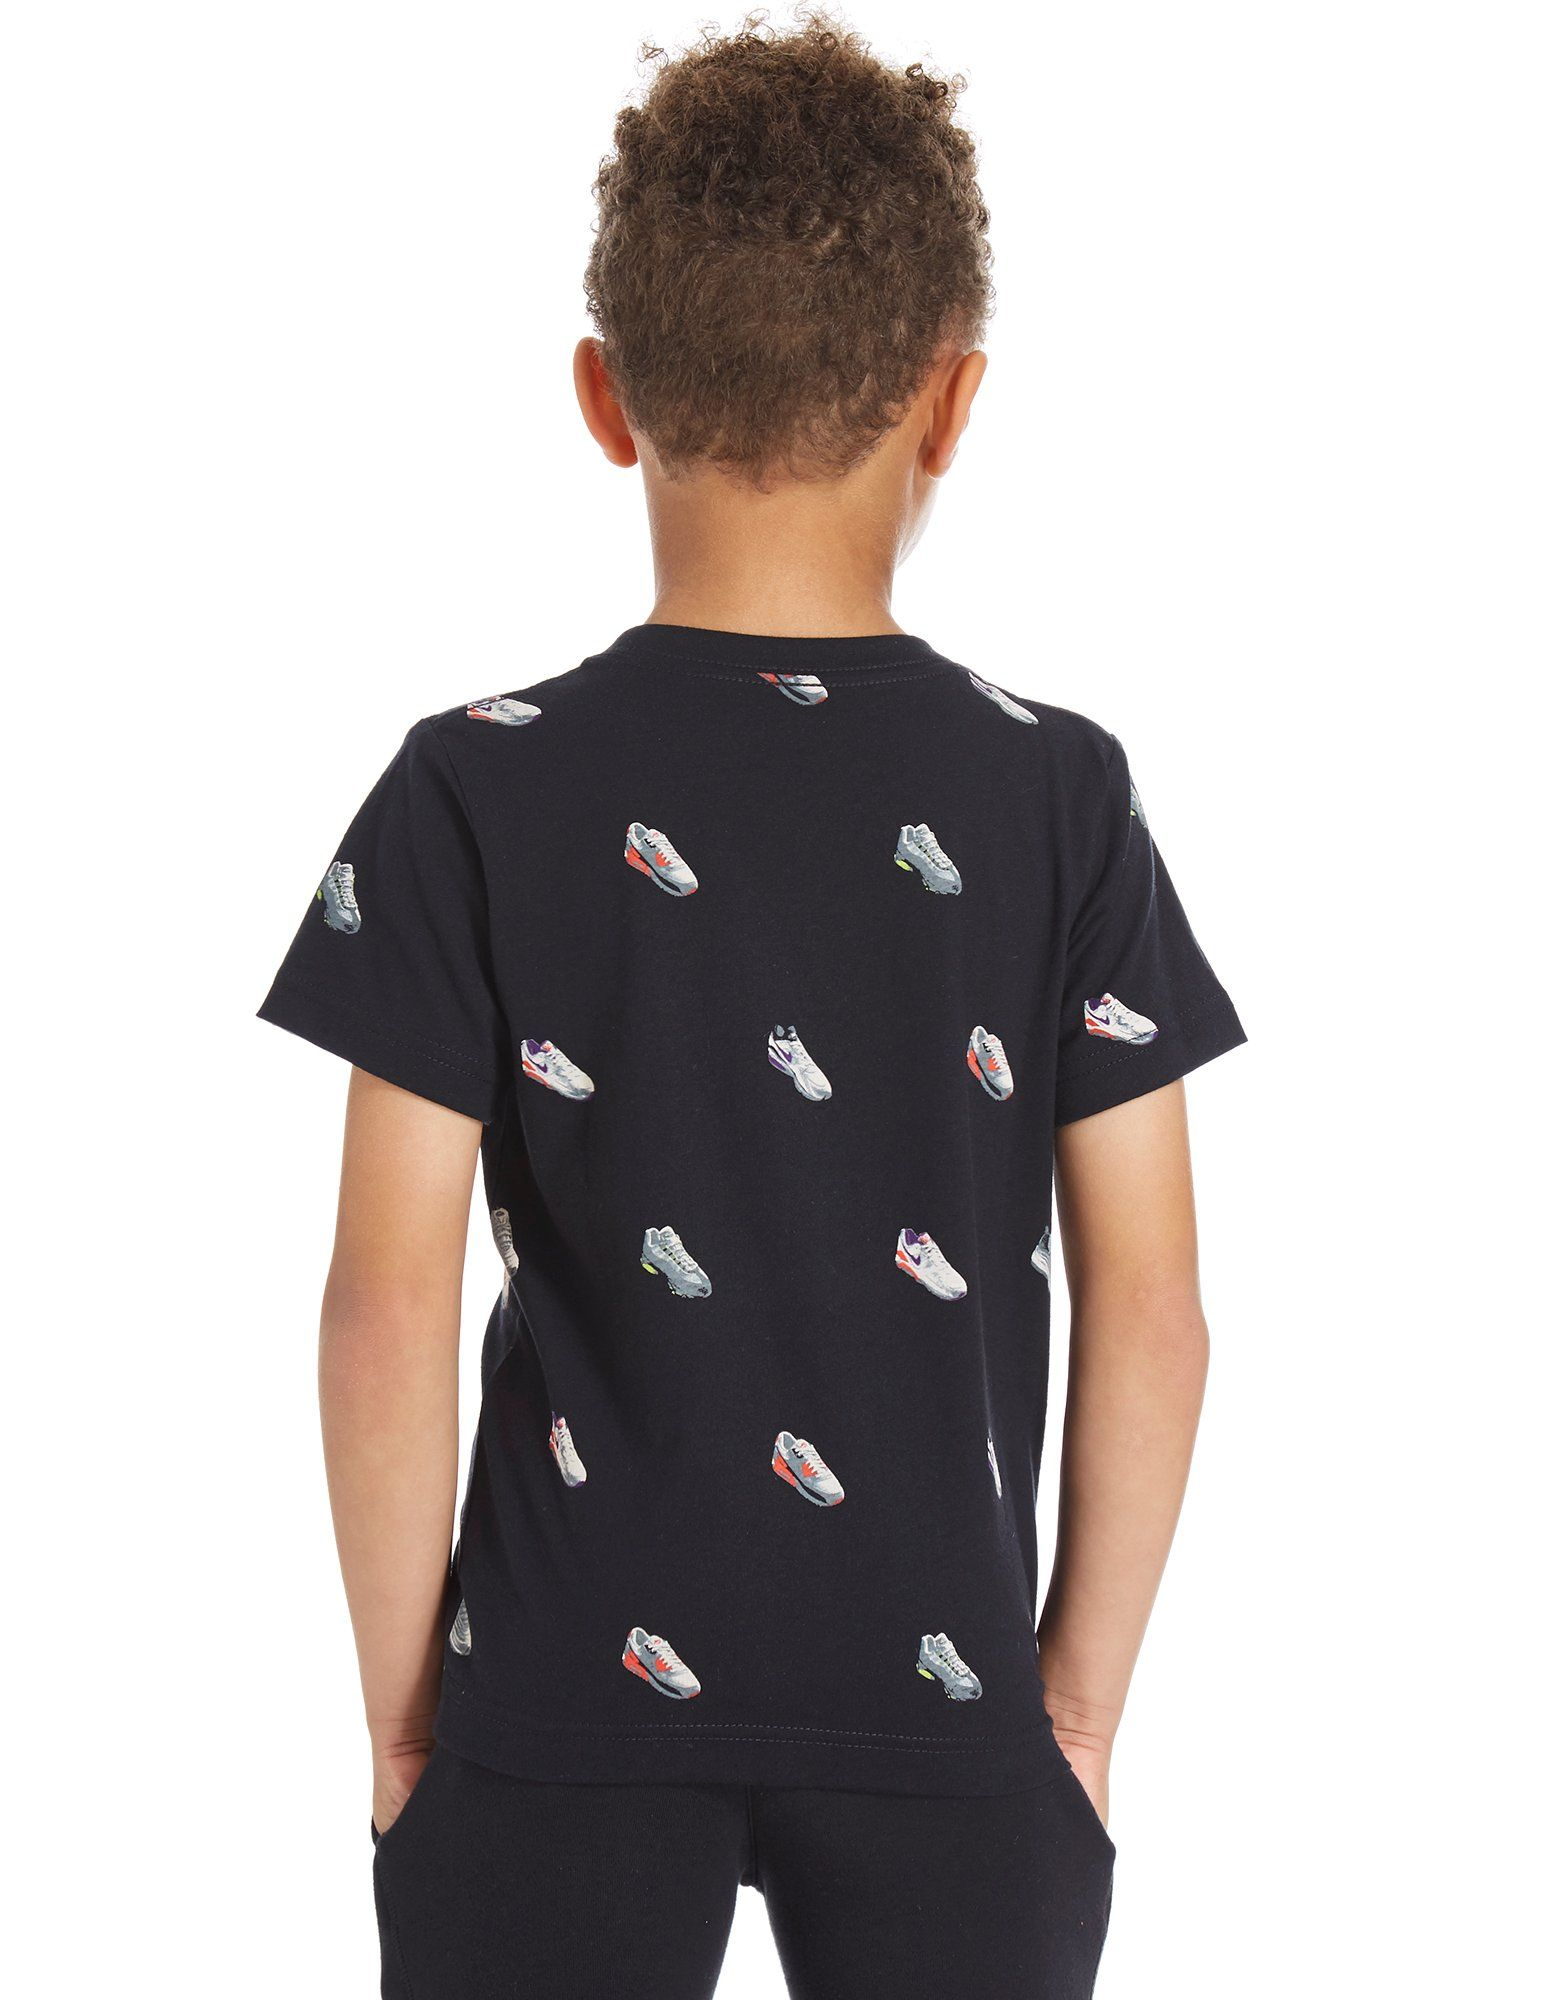 Nike Air Shoe Print T-Shirt Children